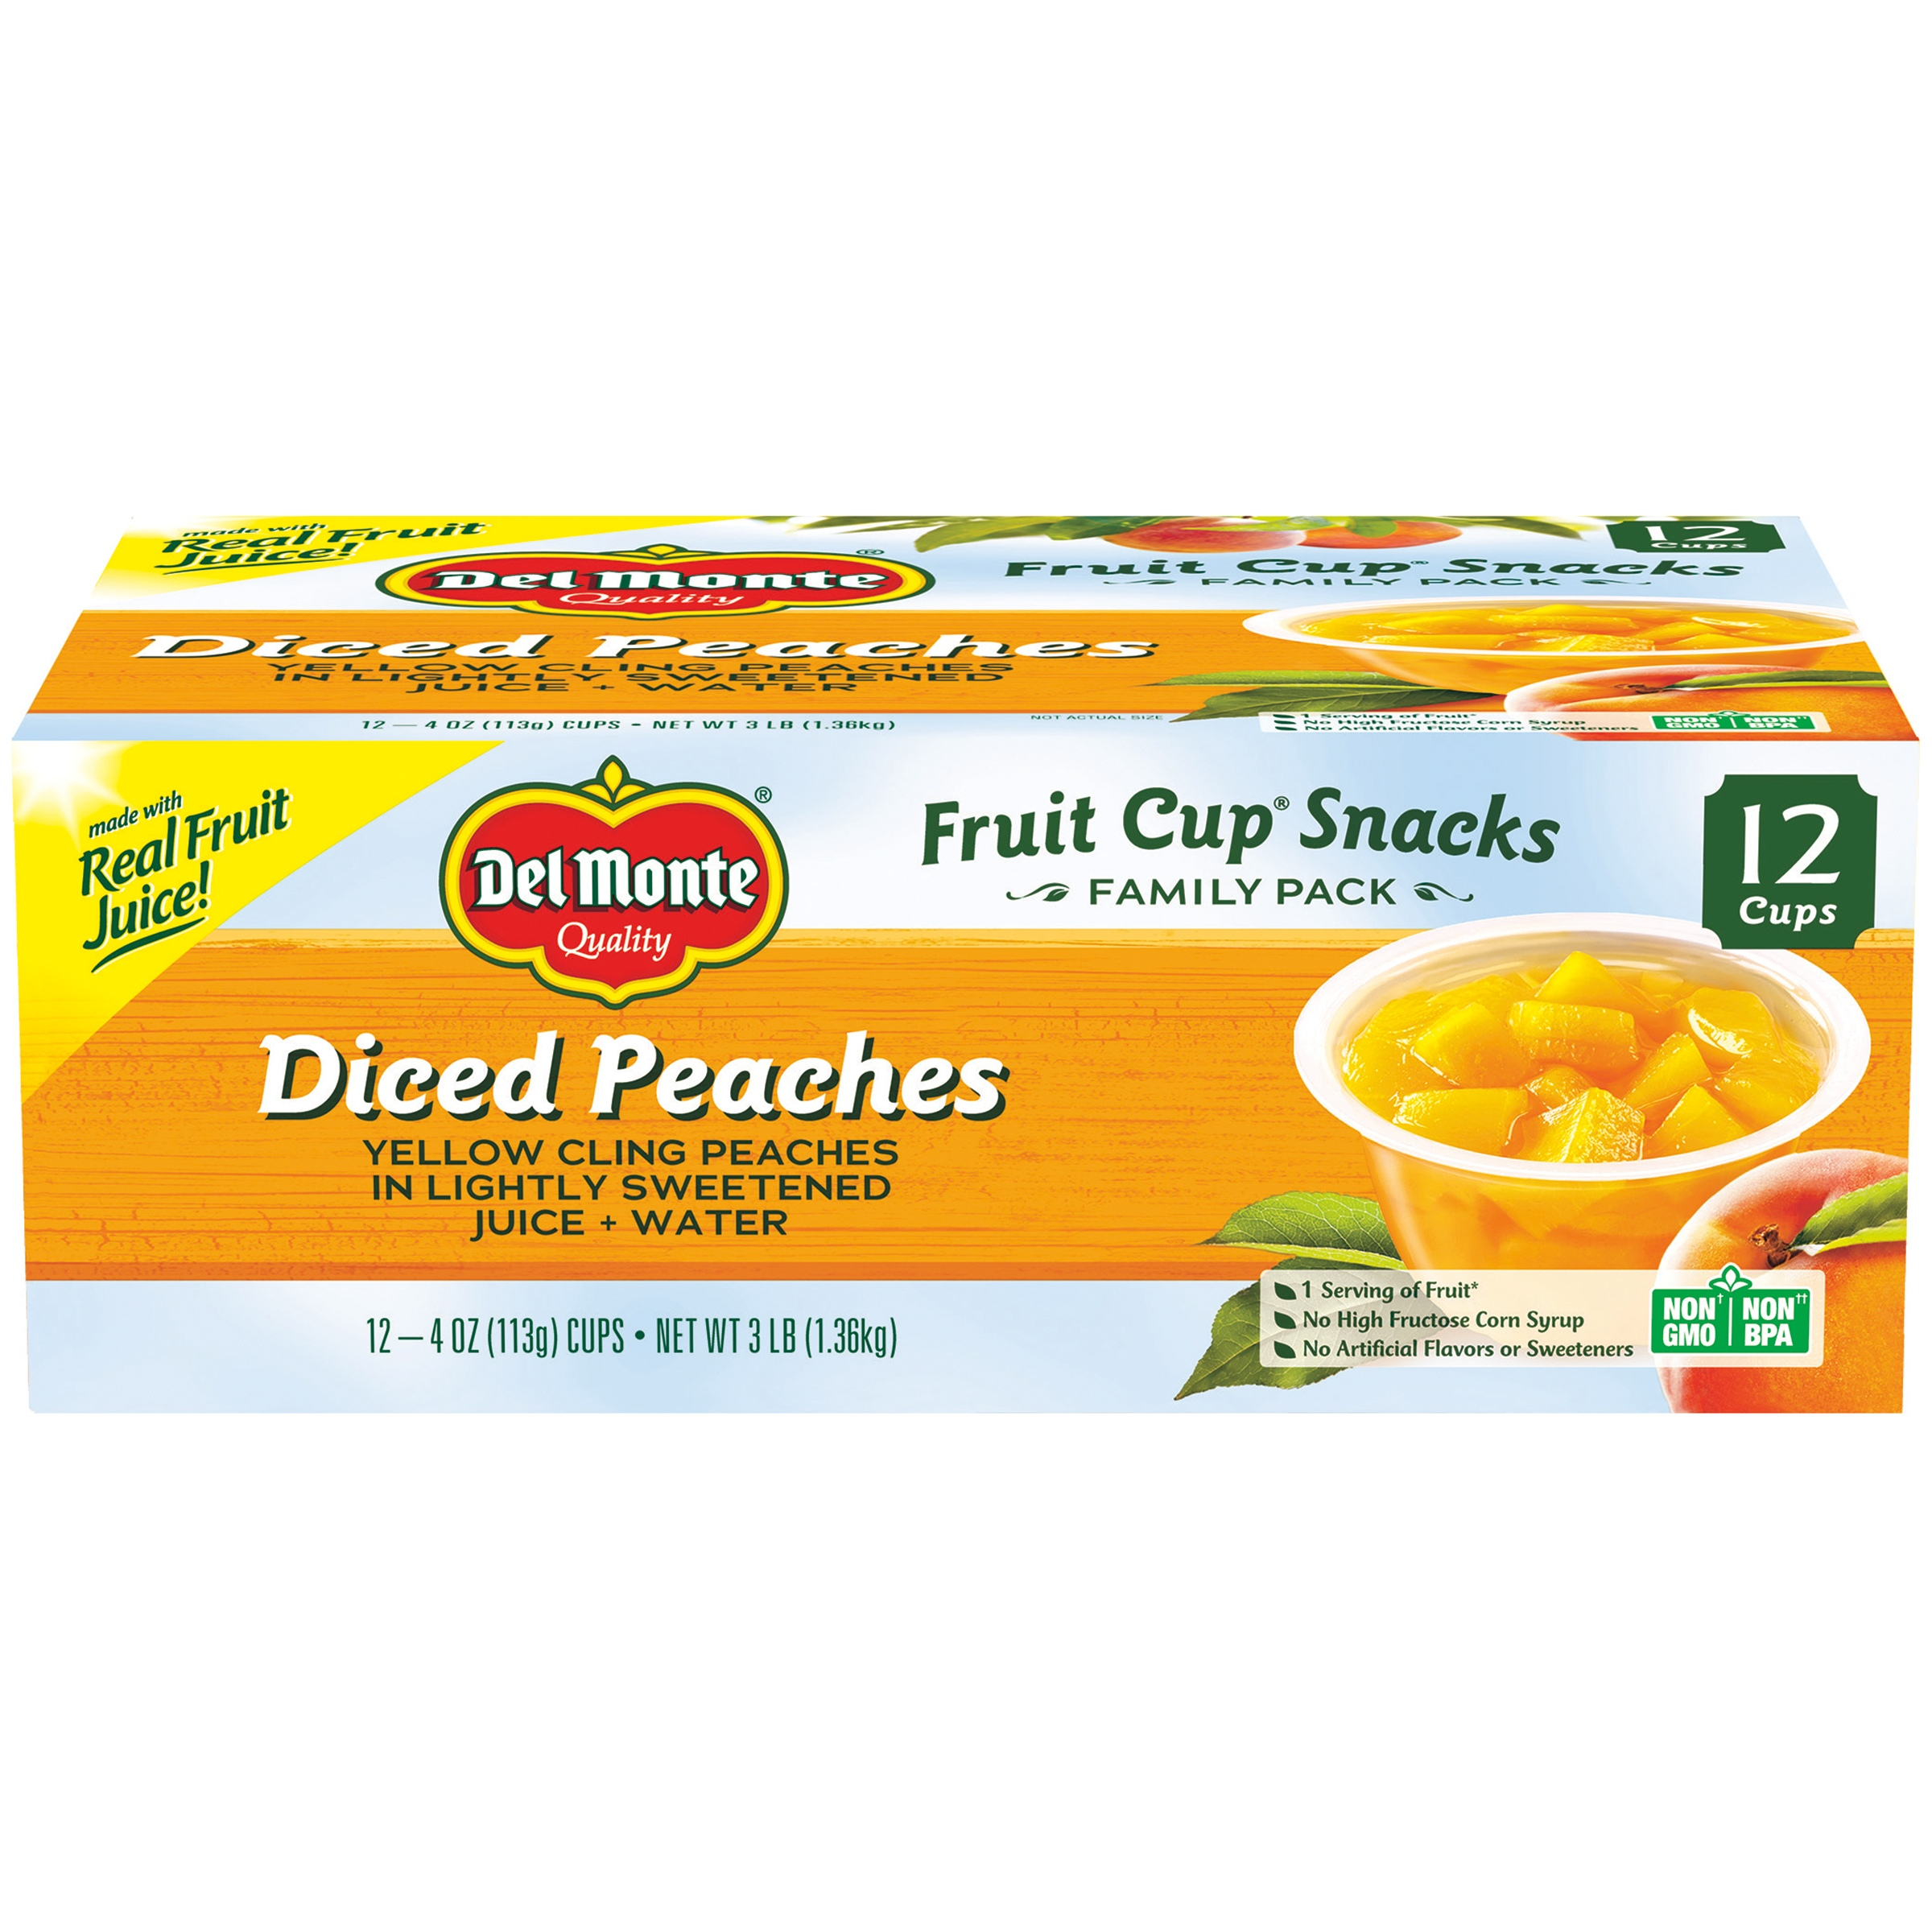 Del Monte Fruit Cup Snacks Diced Peaches, 12 - 4 oz cups